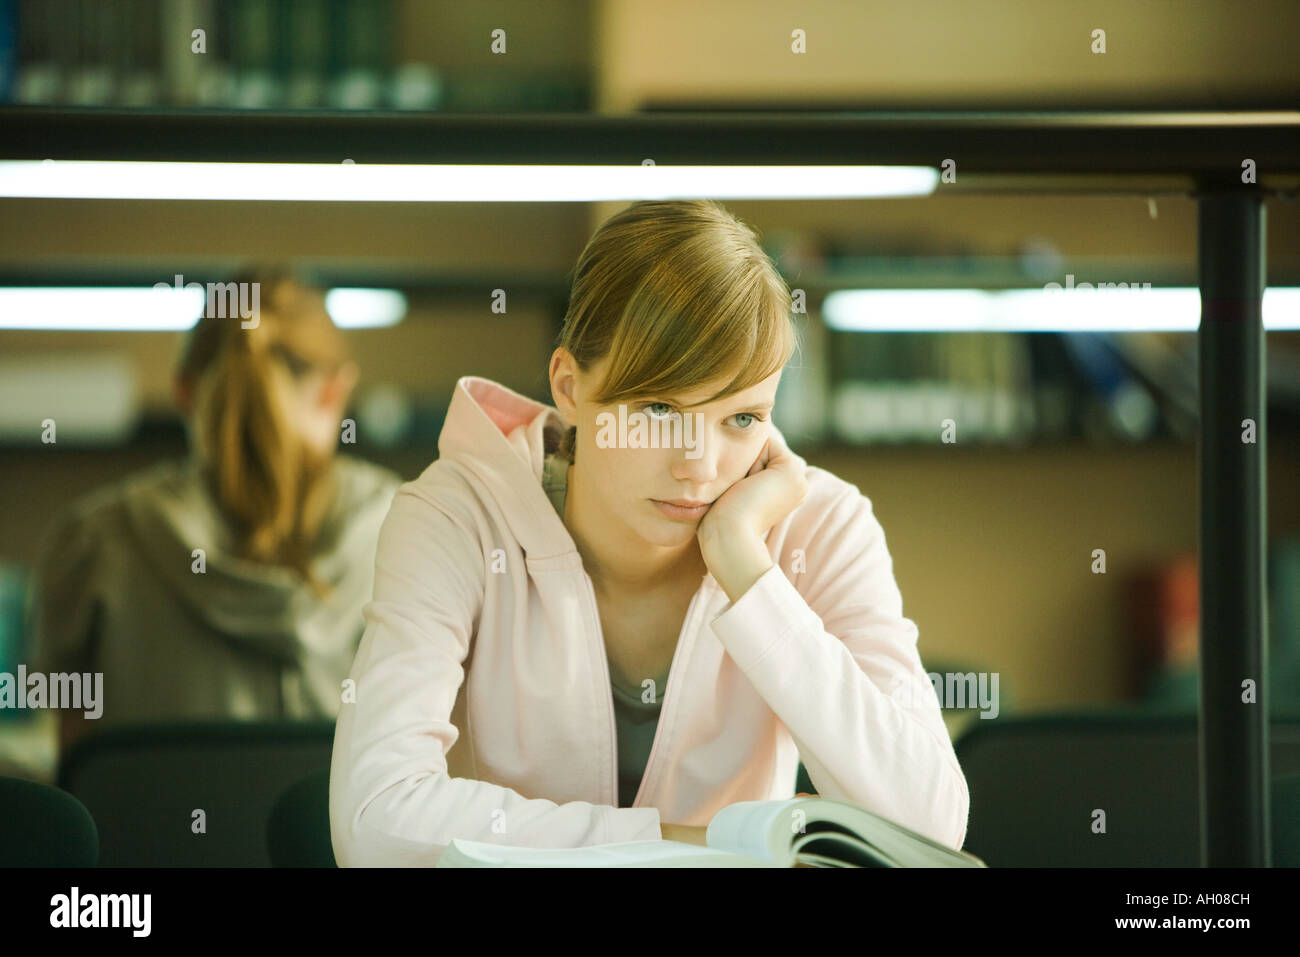 Young woman studying in university library, holding head, looking away - Stock Image